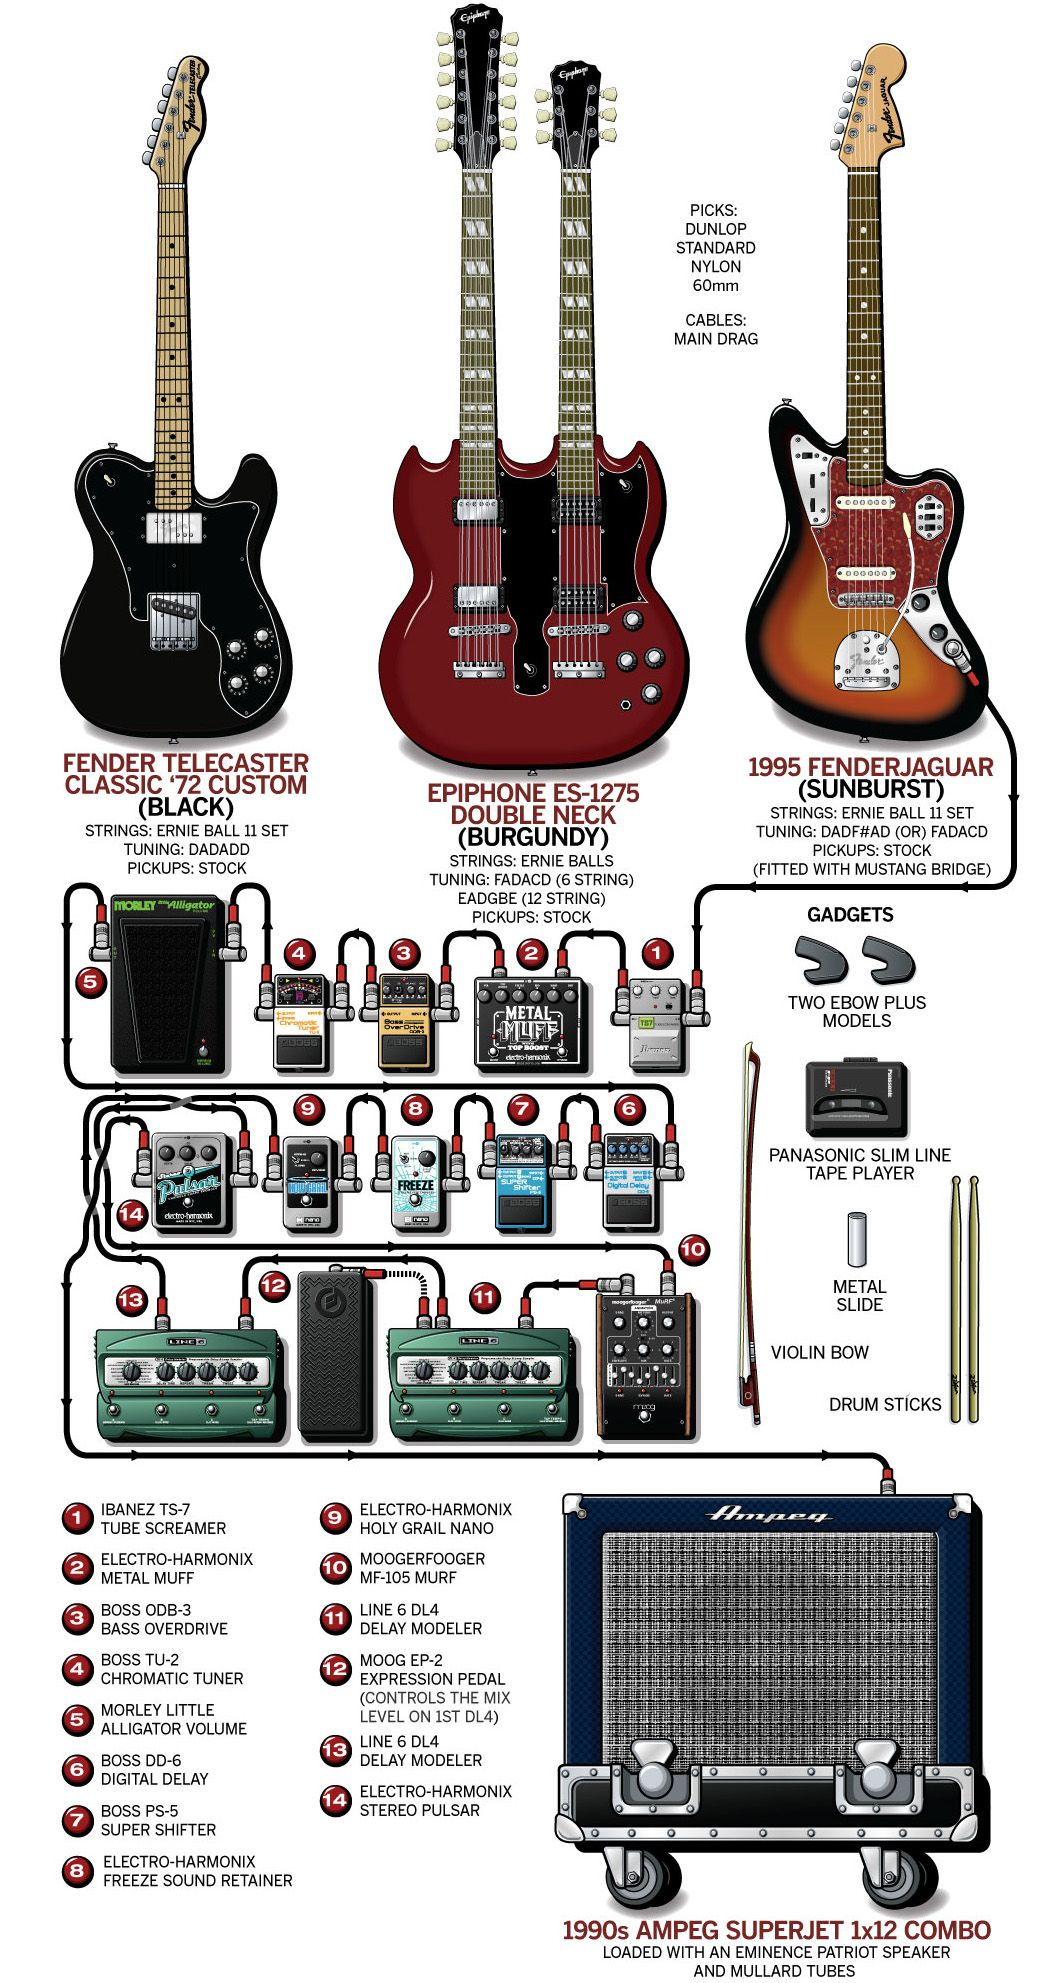 guitar rig diagram sharepoint extranet topology a detailed gear of sarah lipstates 2011 noveller